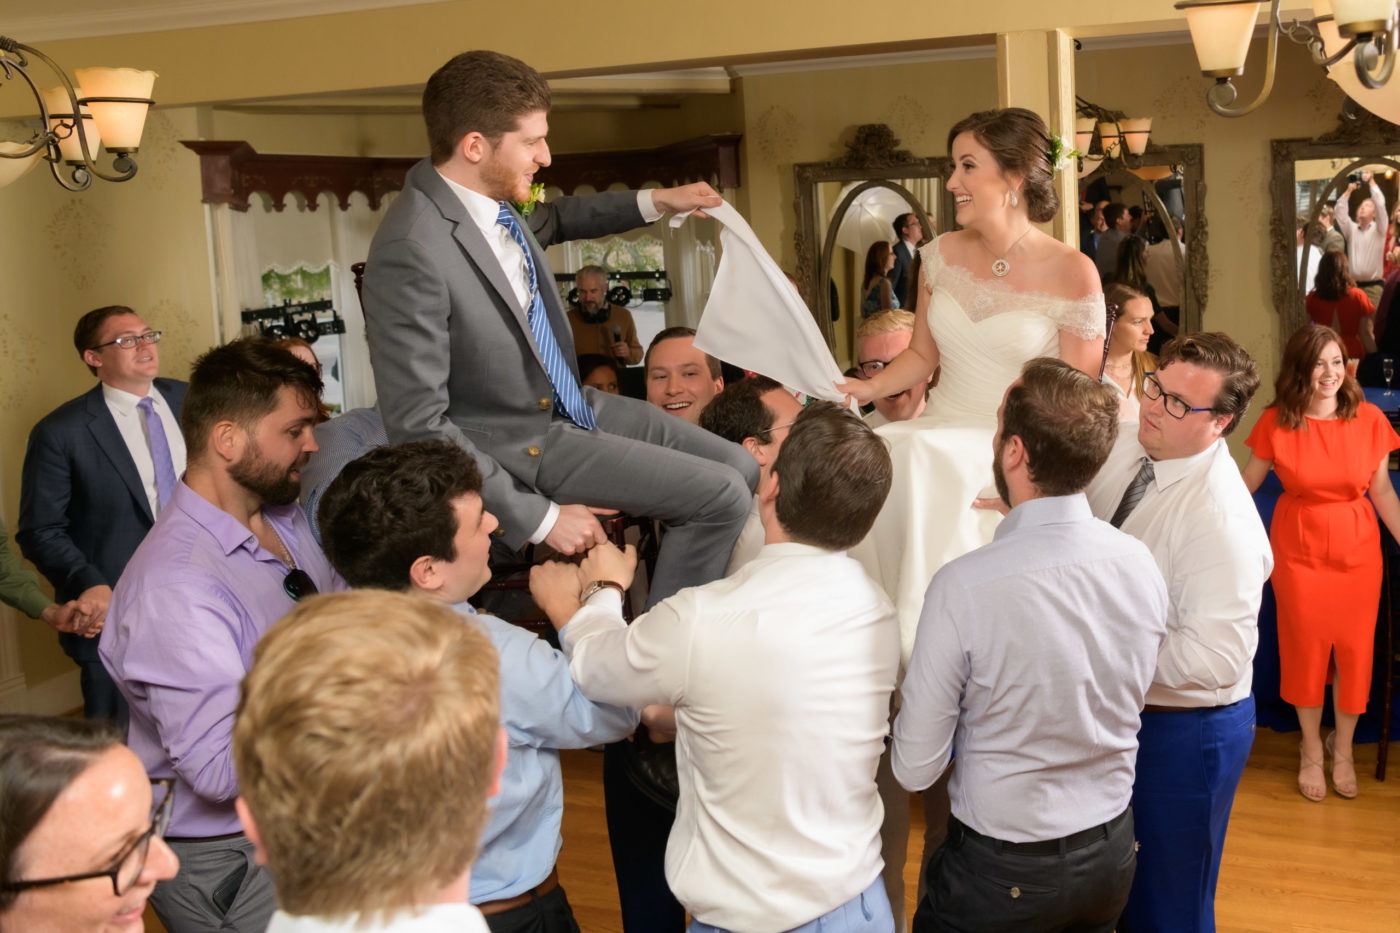 Wedding Celebration at Perry House